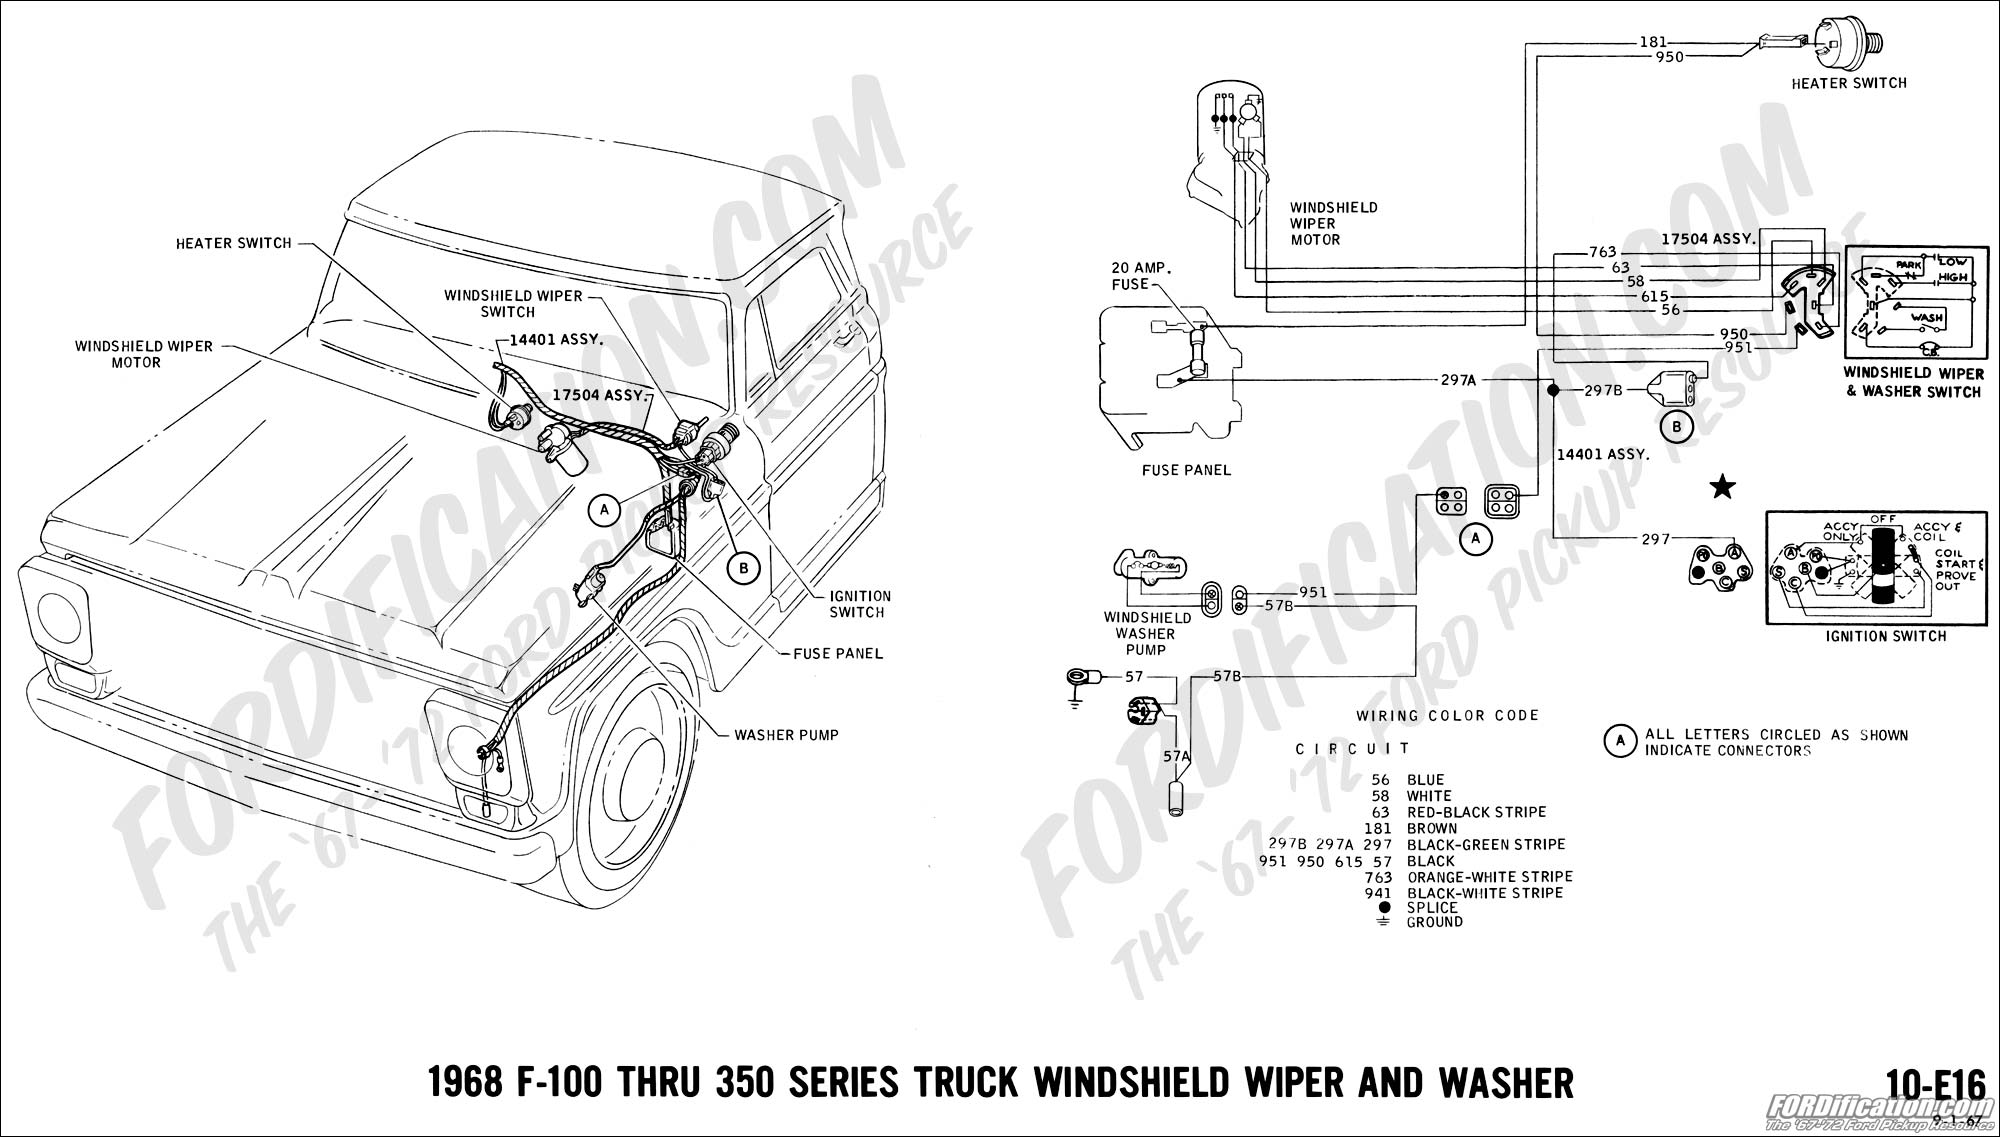 2003 Ford Ranger Xl Wiring Diagram. factory tachometer